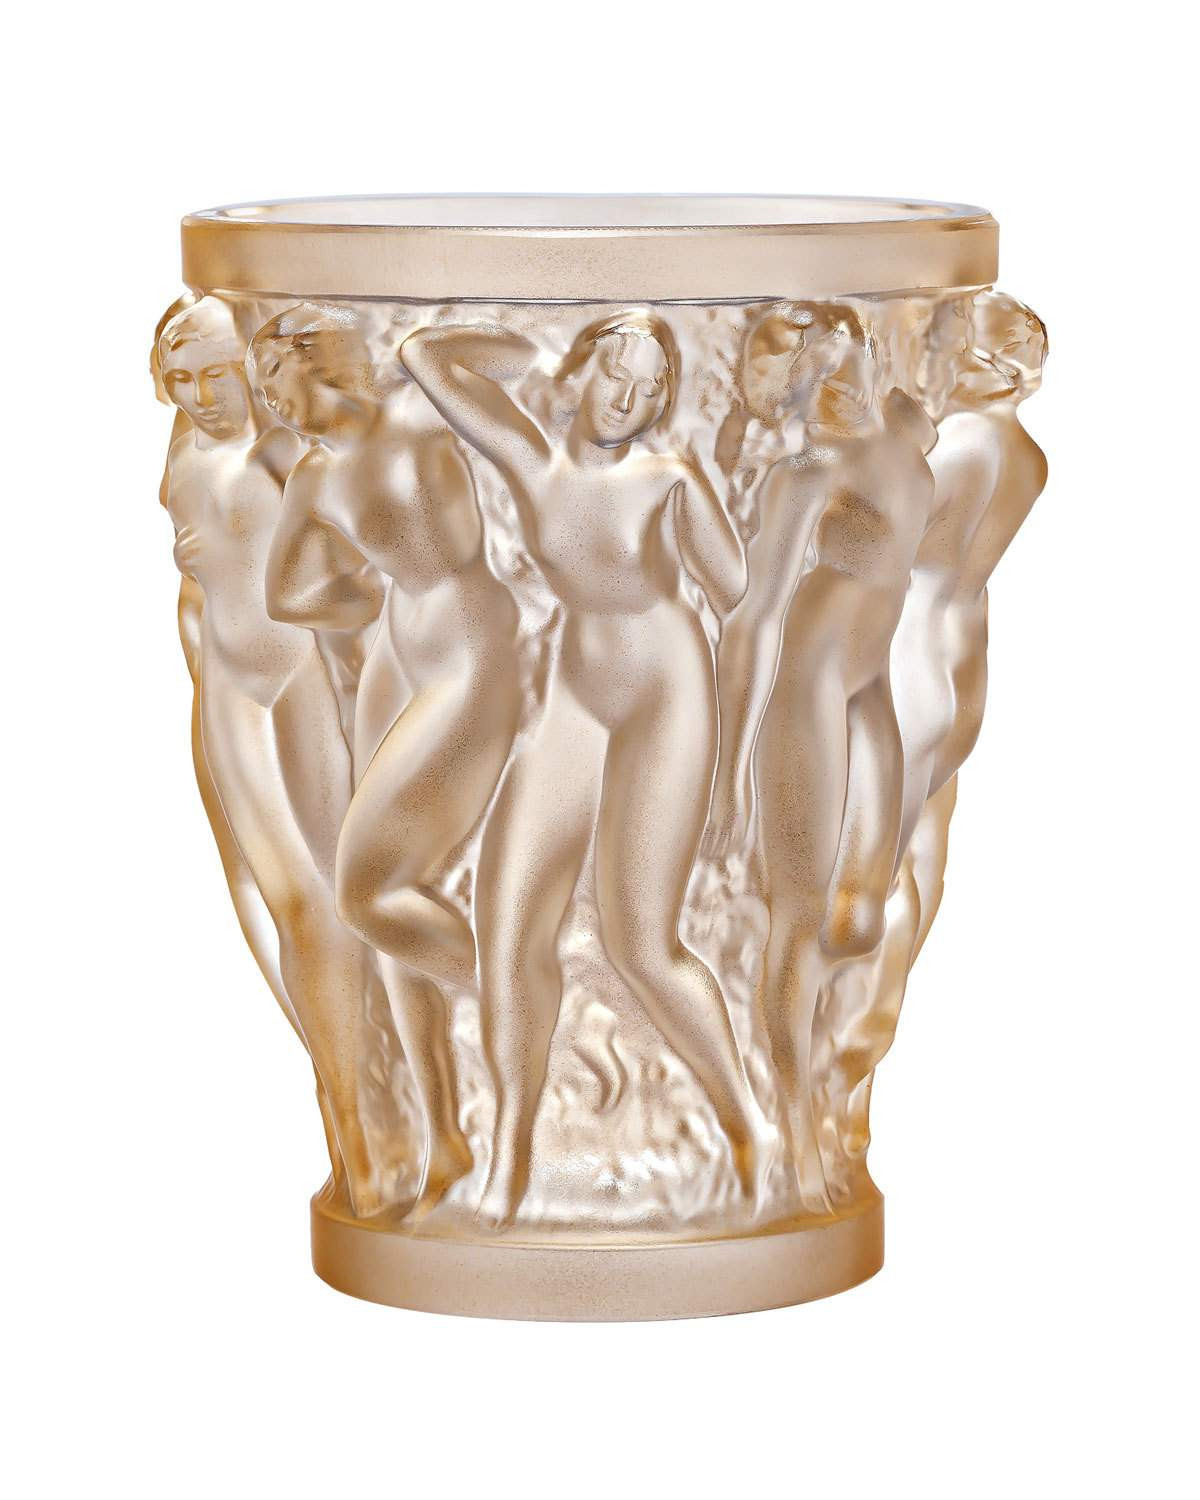 lalique tulip vase of lalique product collection at neiman marcus regarding lalique bacchantes small gold luster vase